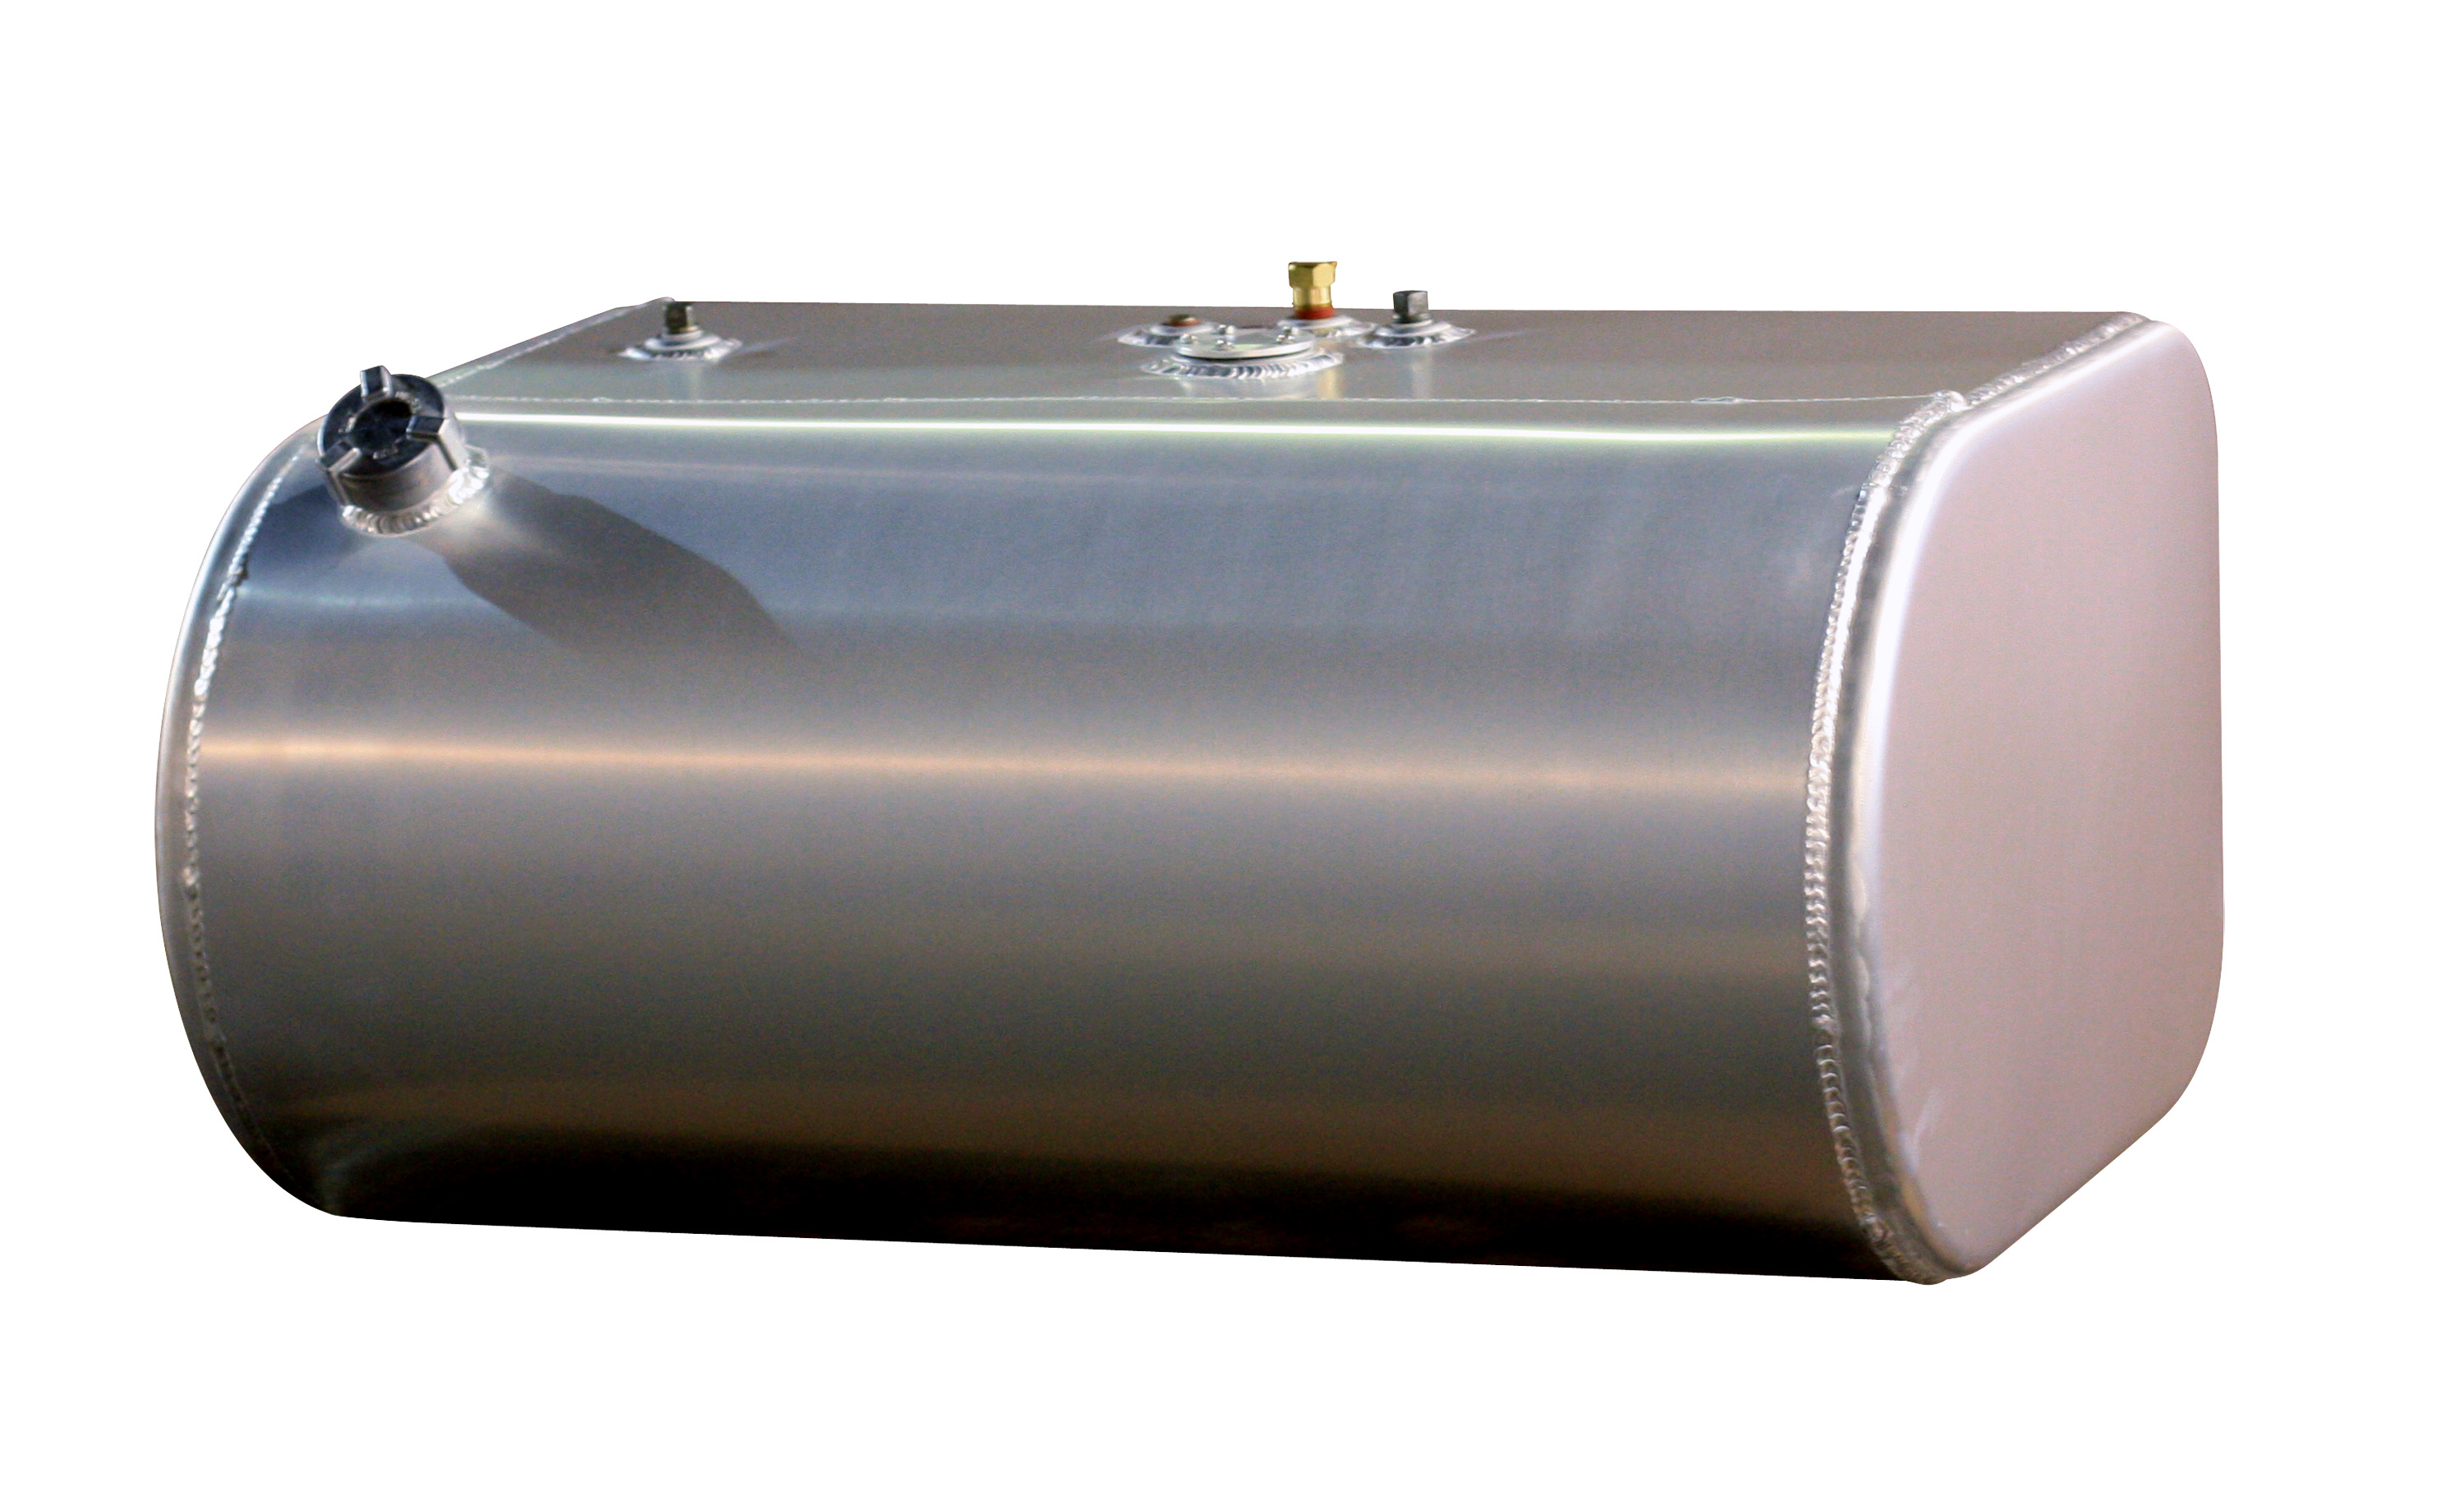 Cleveland Tank Supply Announces New D O T Certified 19 70 Gallon Aluminum D Tanks For Diesel Trucks